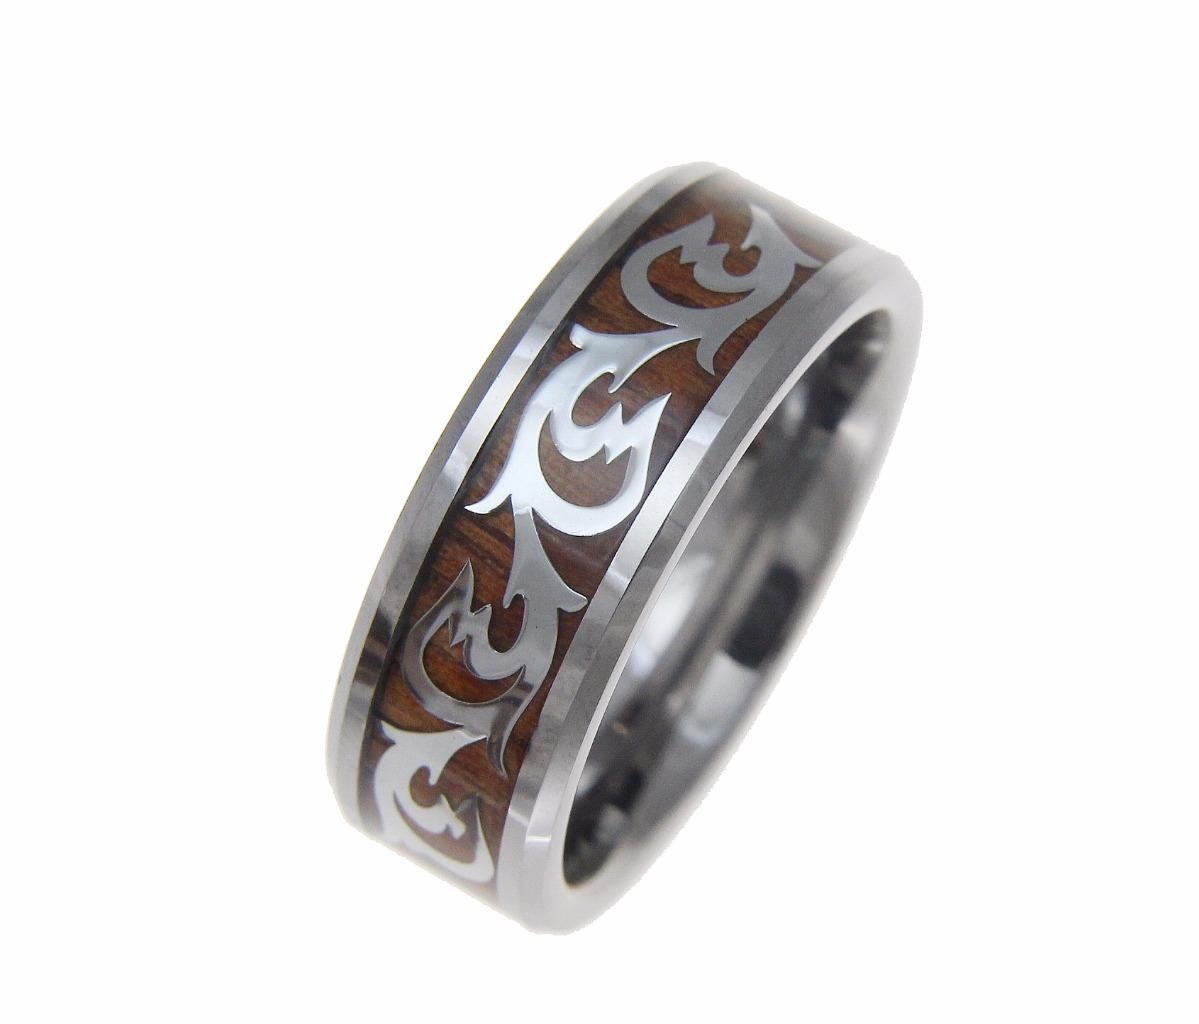 Genuine inlay Hawaiian koa wood shiny scroll band ring tungsten comfort fit 8mm size 10